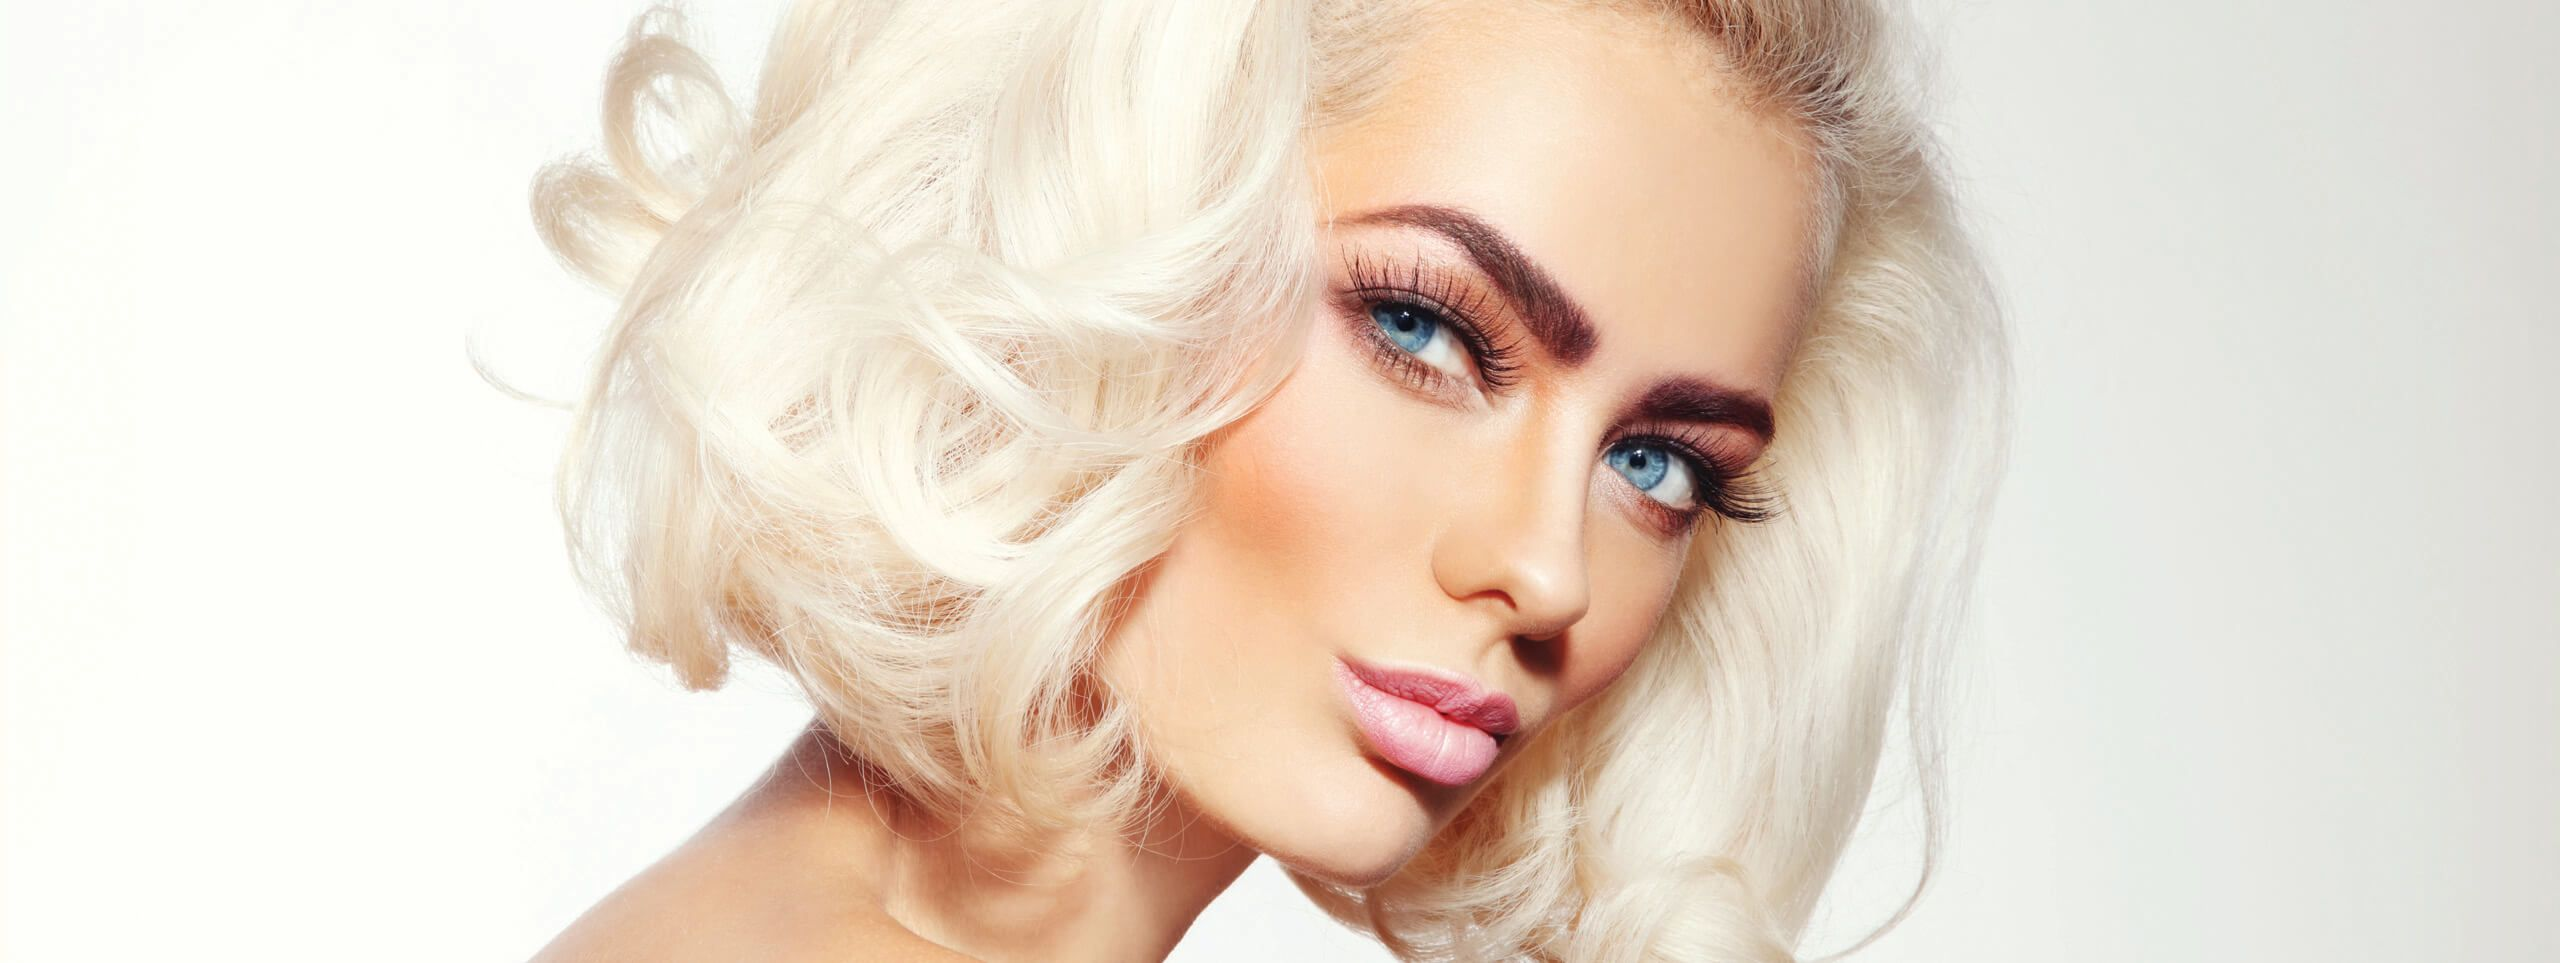 Model rocks platinum blonde hair color trend